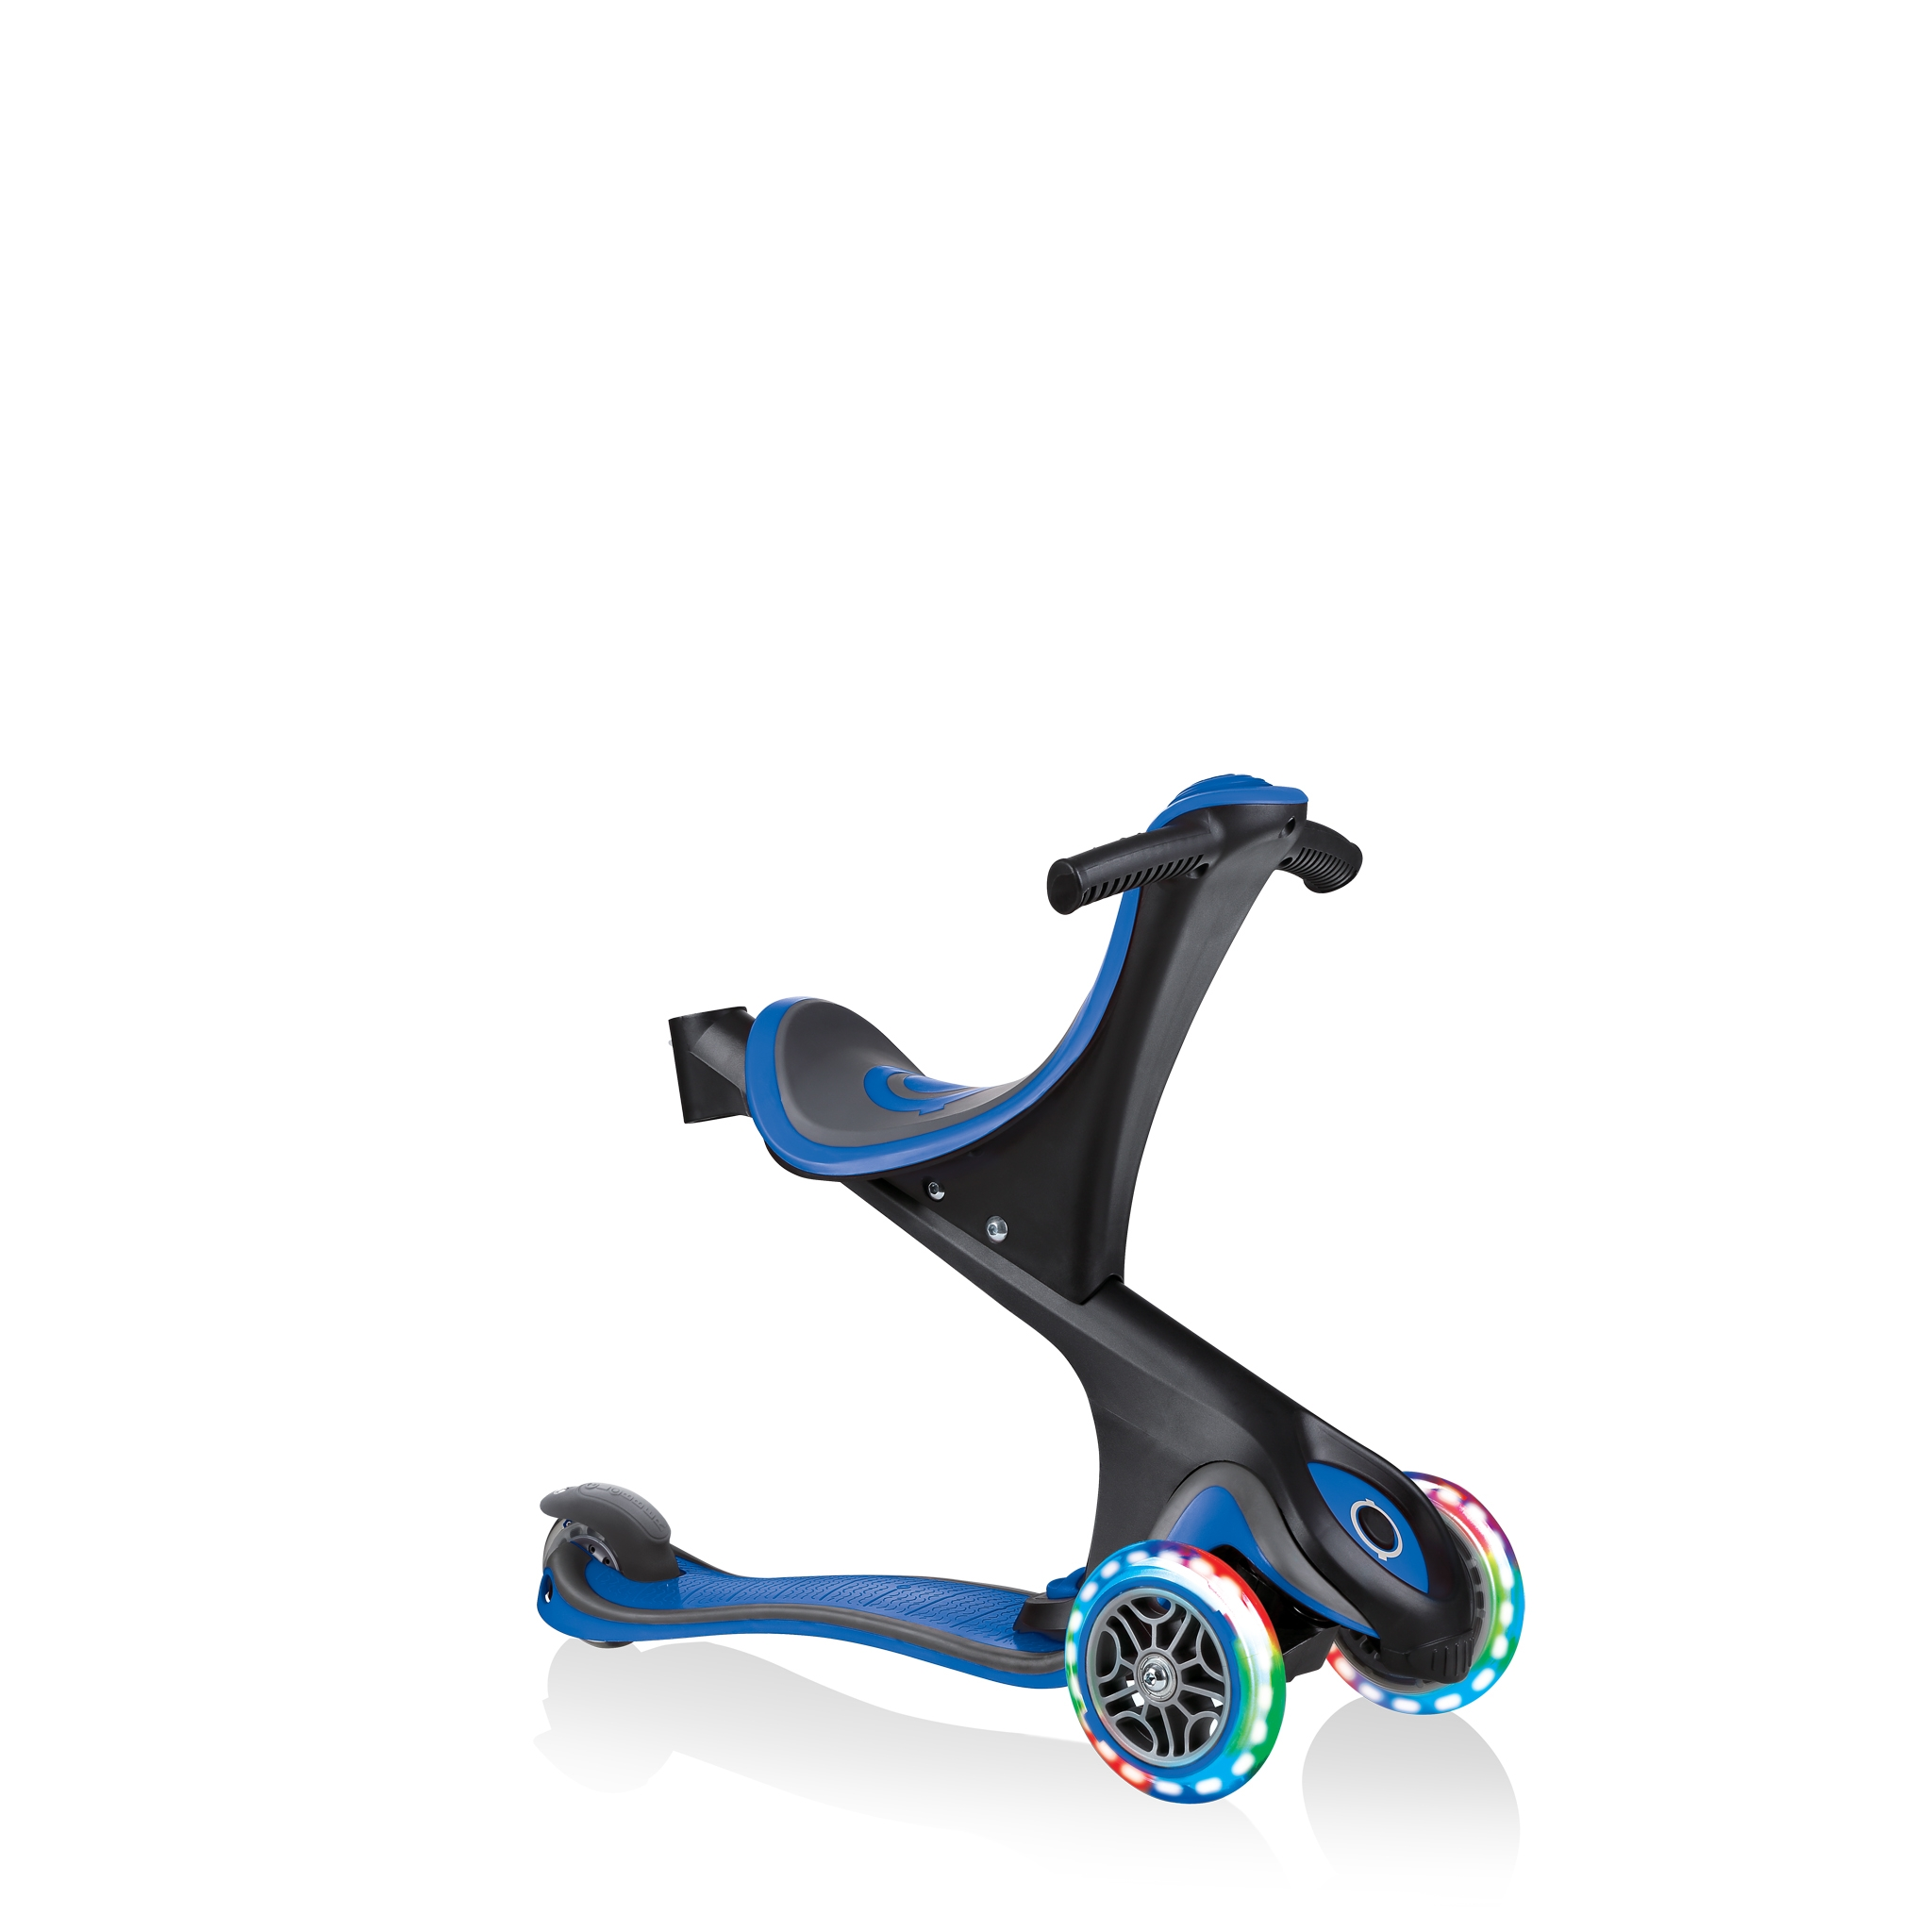 GO-UP-COMFORT-LIGHTS-scooter-with-seat-walking-bike-navy-blue 2